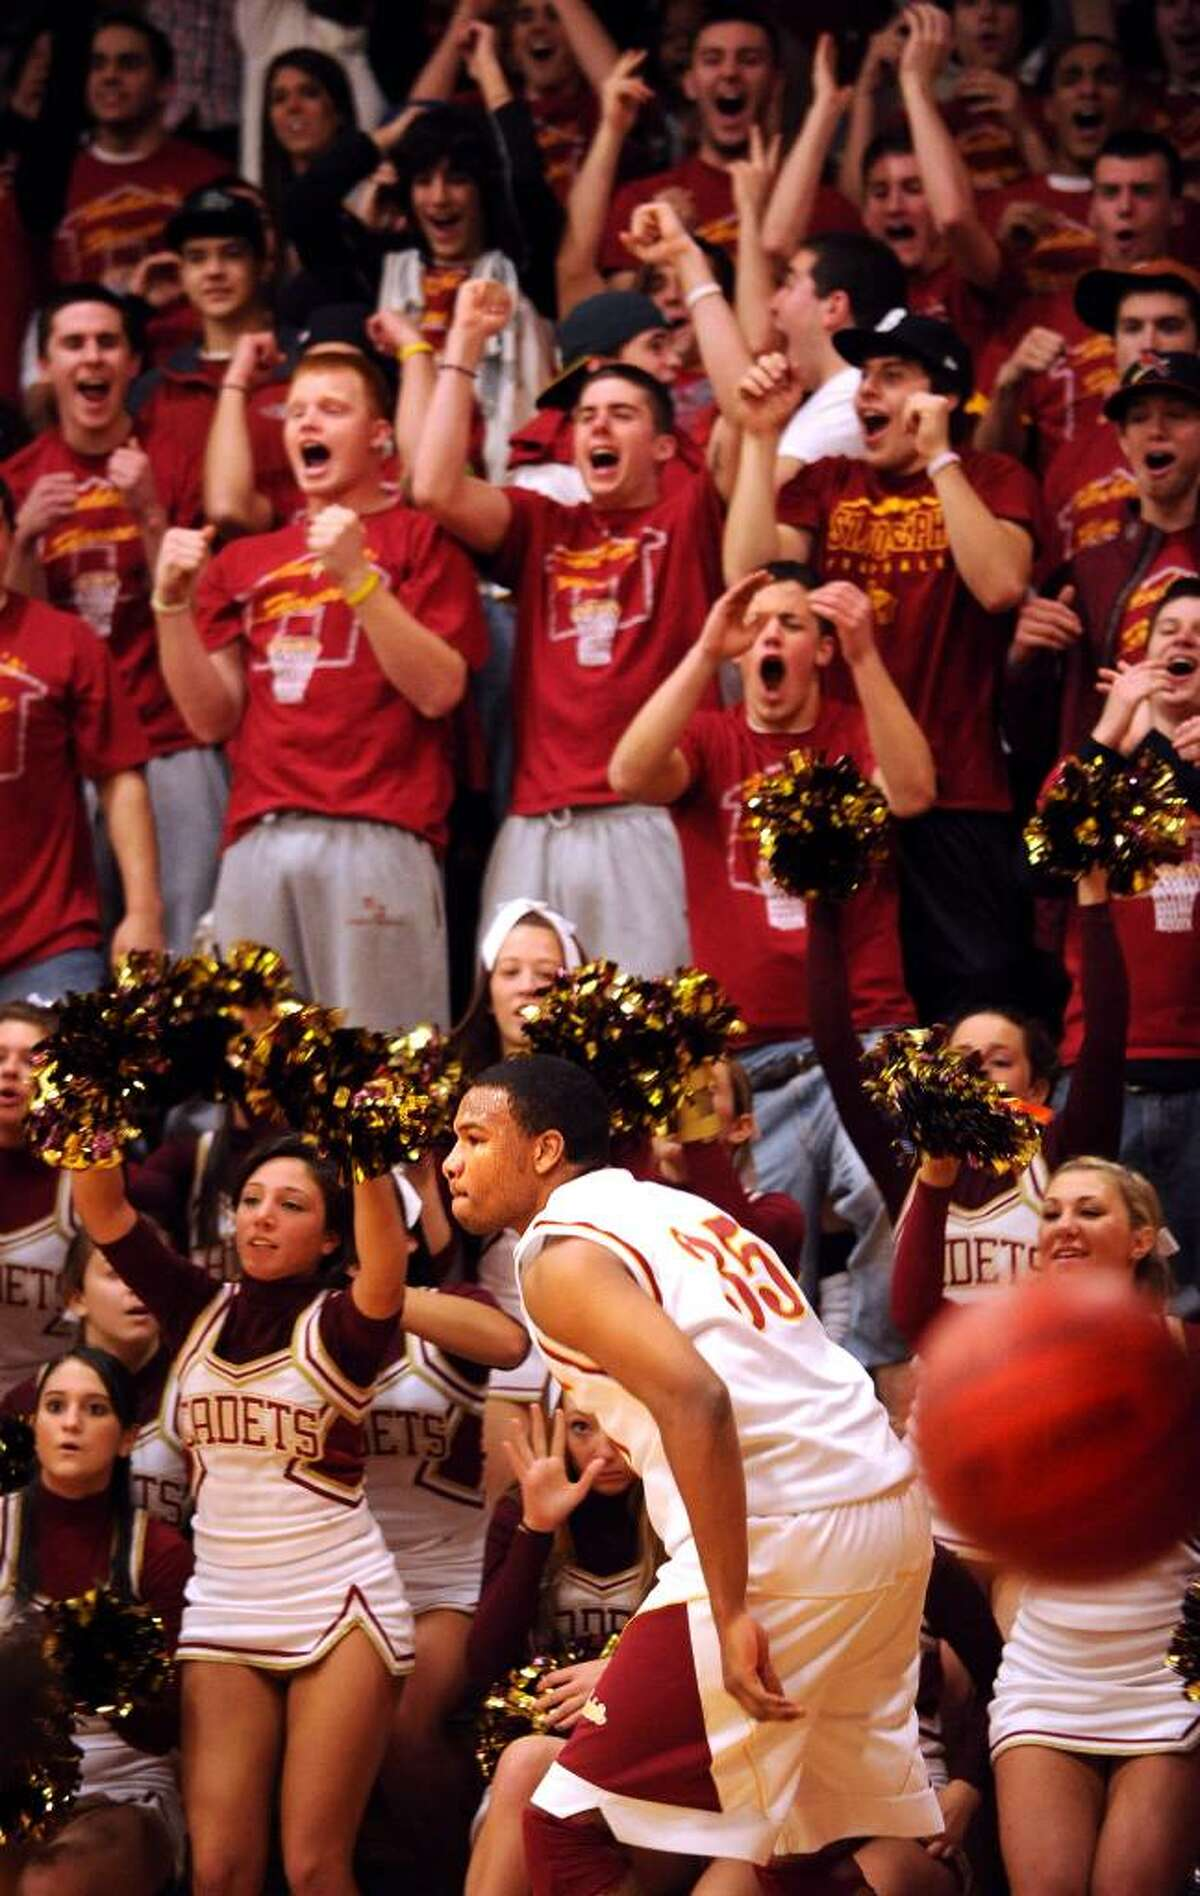 St. Joseph's Greg Langston runs past cheering fans after scoring his 1000th point in Tuesday night's game against Bassick Jan. 26, 2010 at St. Joseph High School in Trumbull.